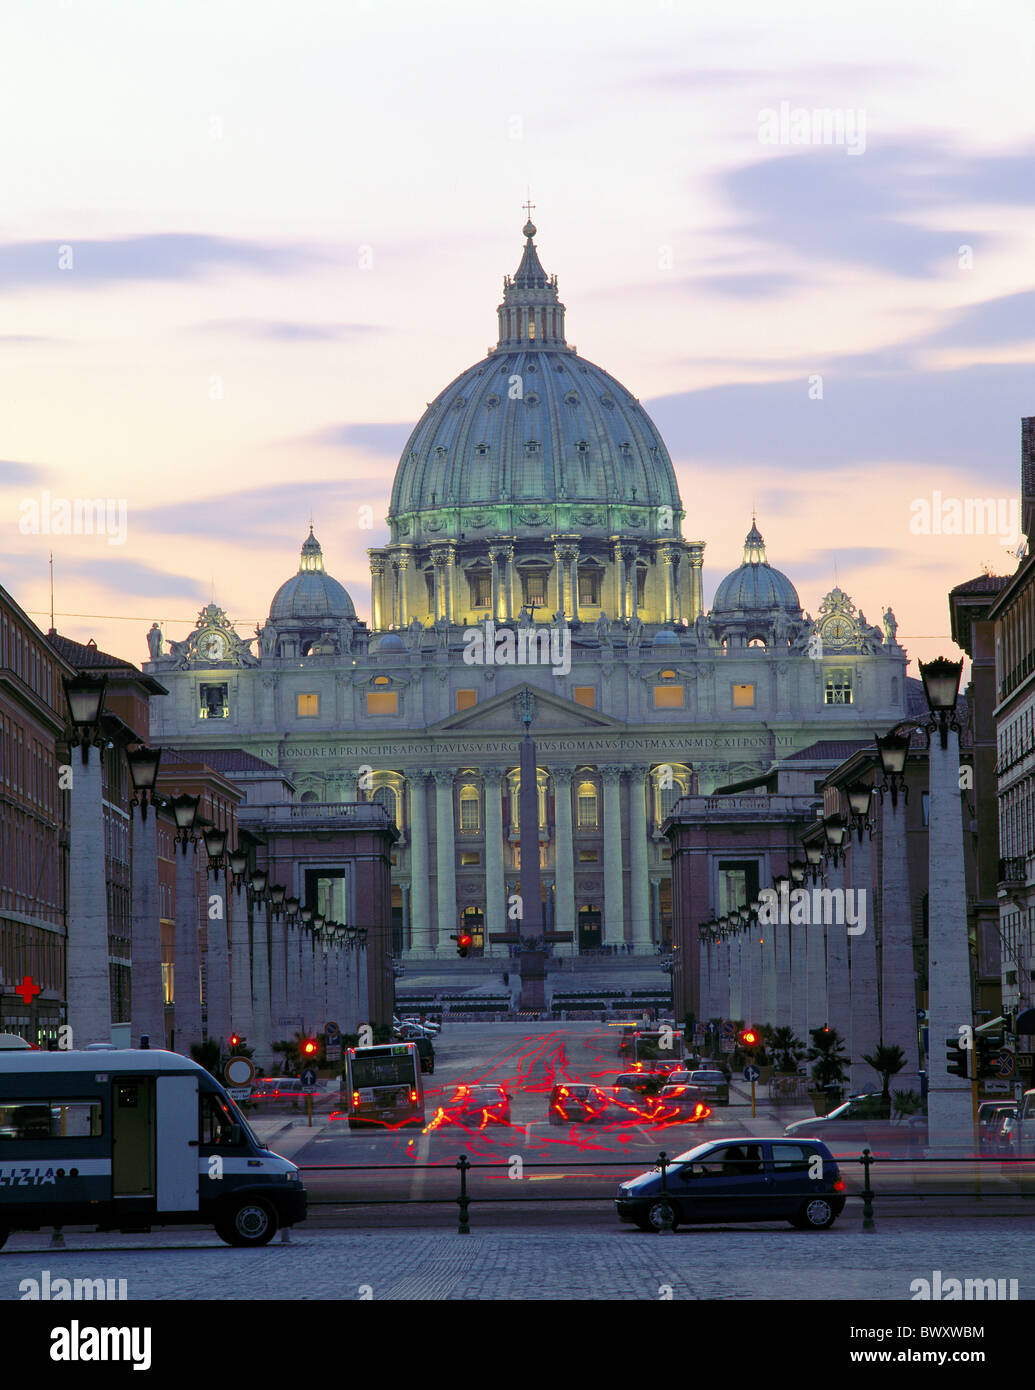 Italy Europe at night Peter's cathedral Rome column avenue Vatican traffic - Stock Image